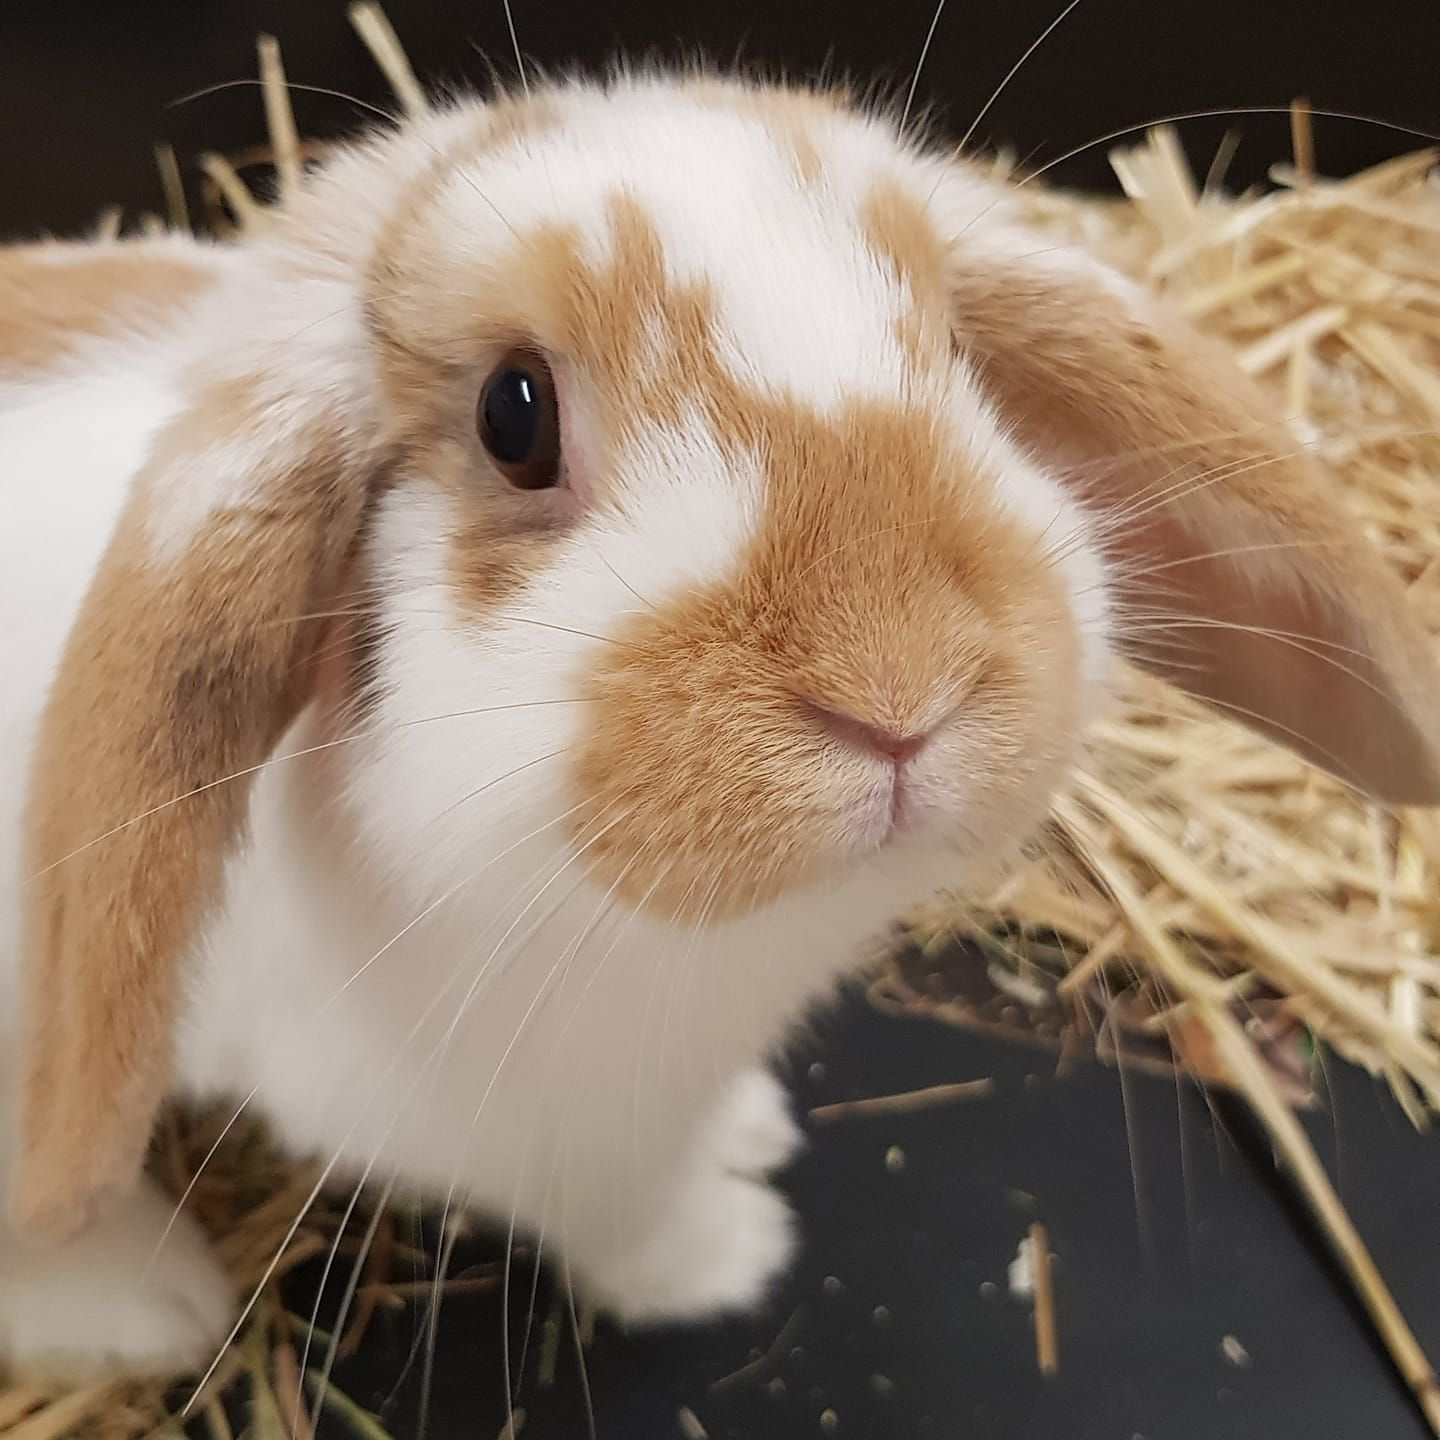 Does your rabbit need a holiday home?